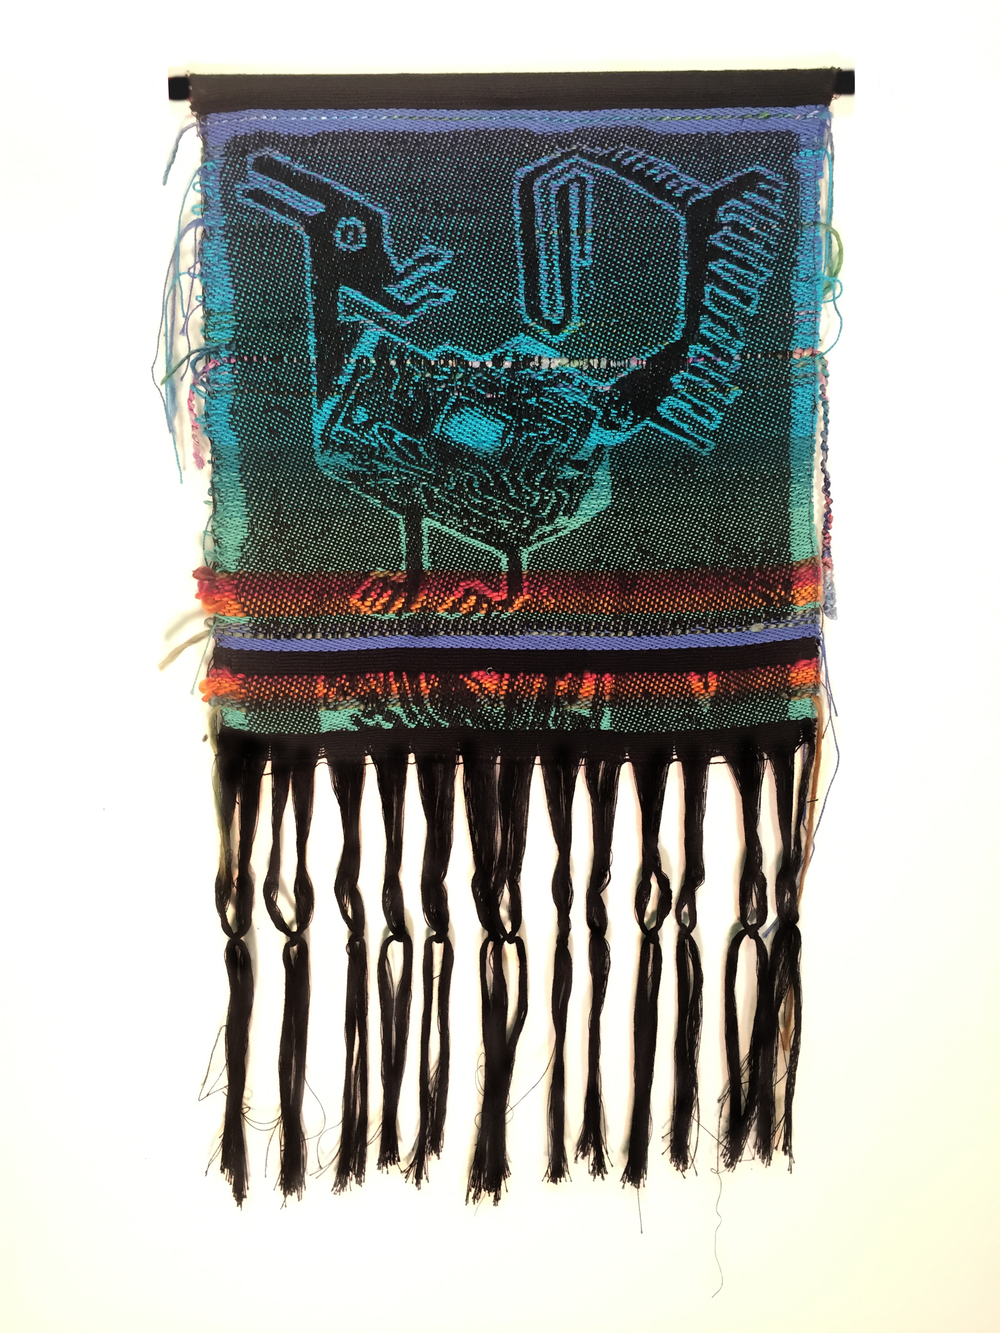 "Robin Kang, Thunderer's Llama, Hand Jacquard woven cotton, hand dyed wool, and synthetic fibers 12.5 x 22"", 2016"